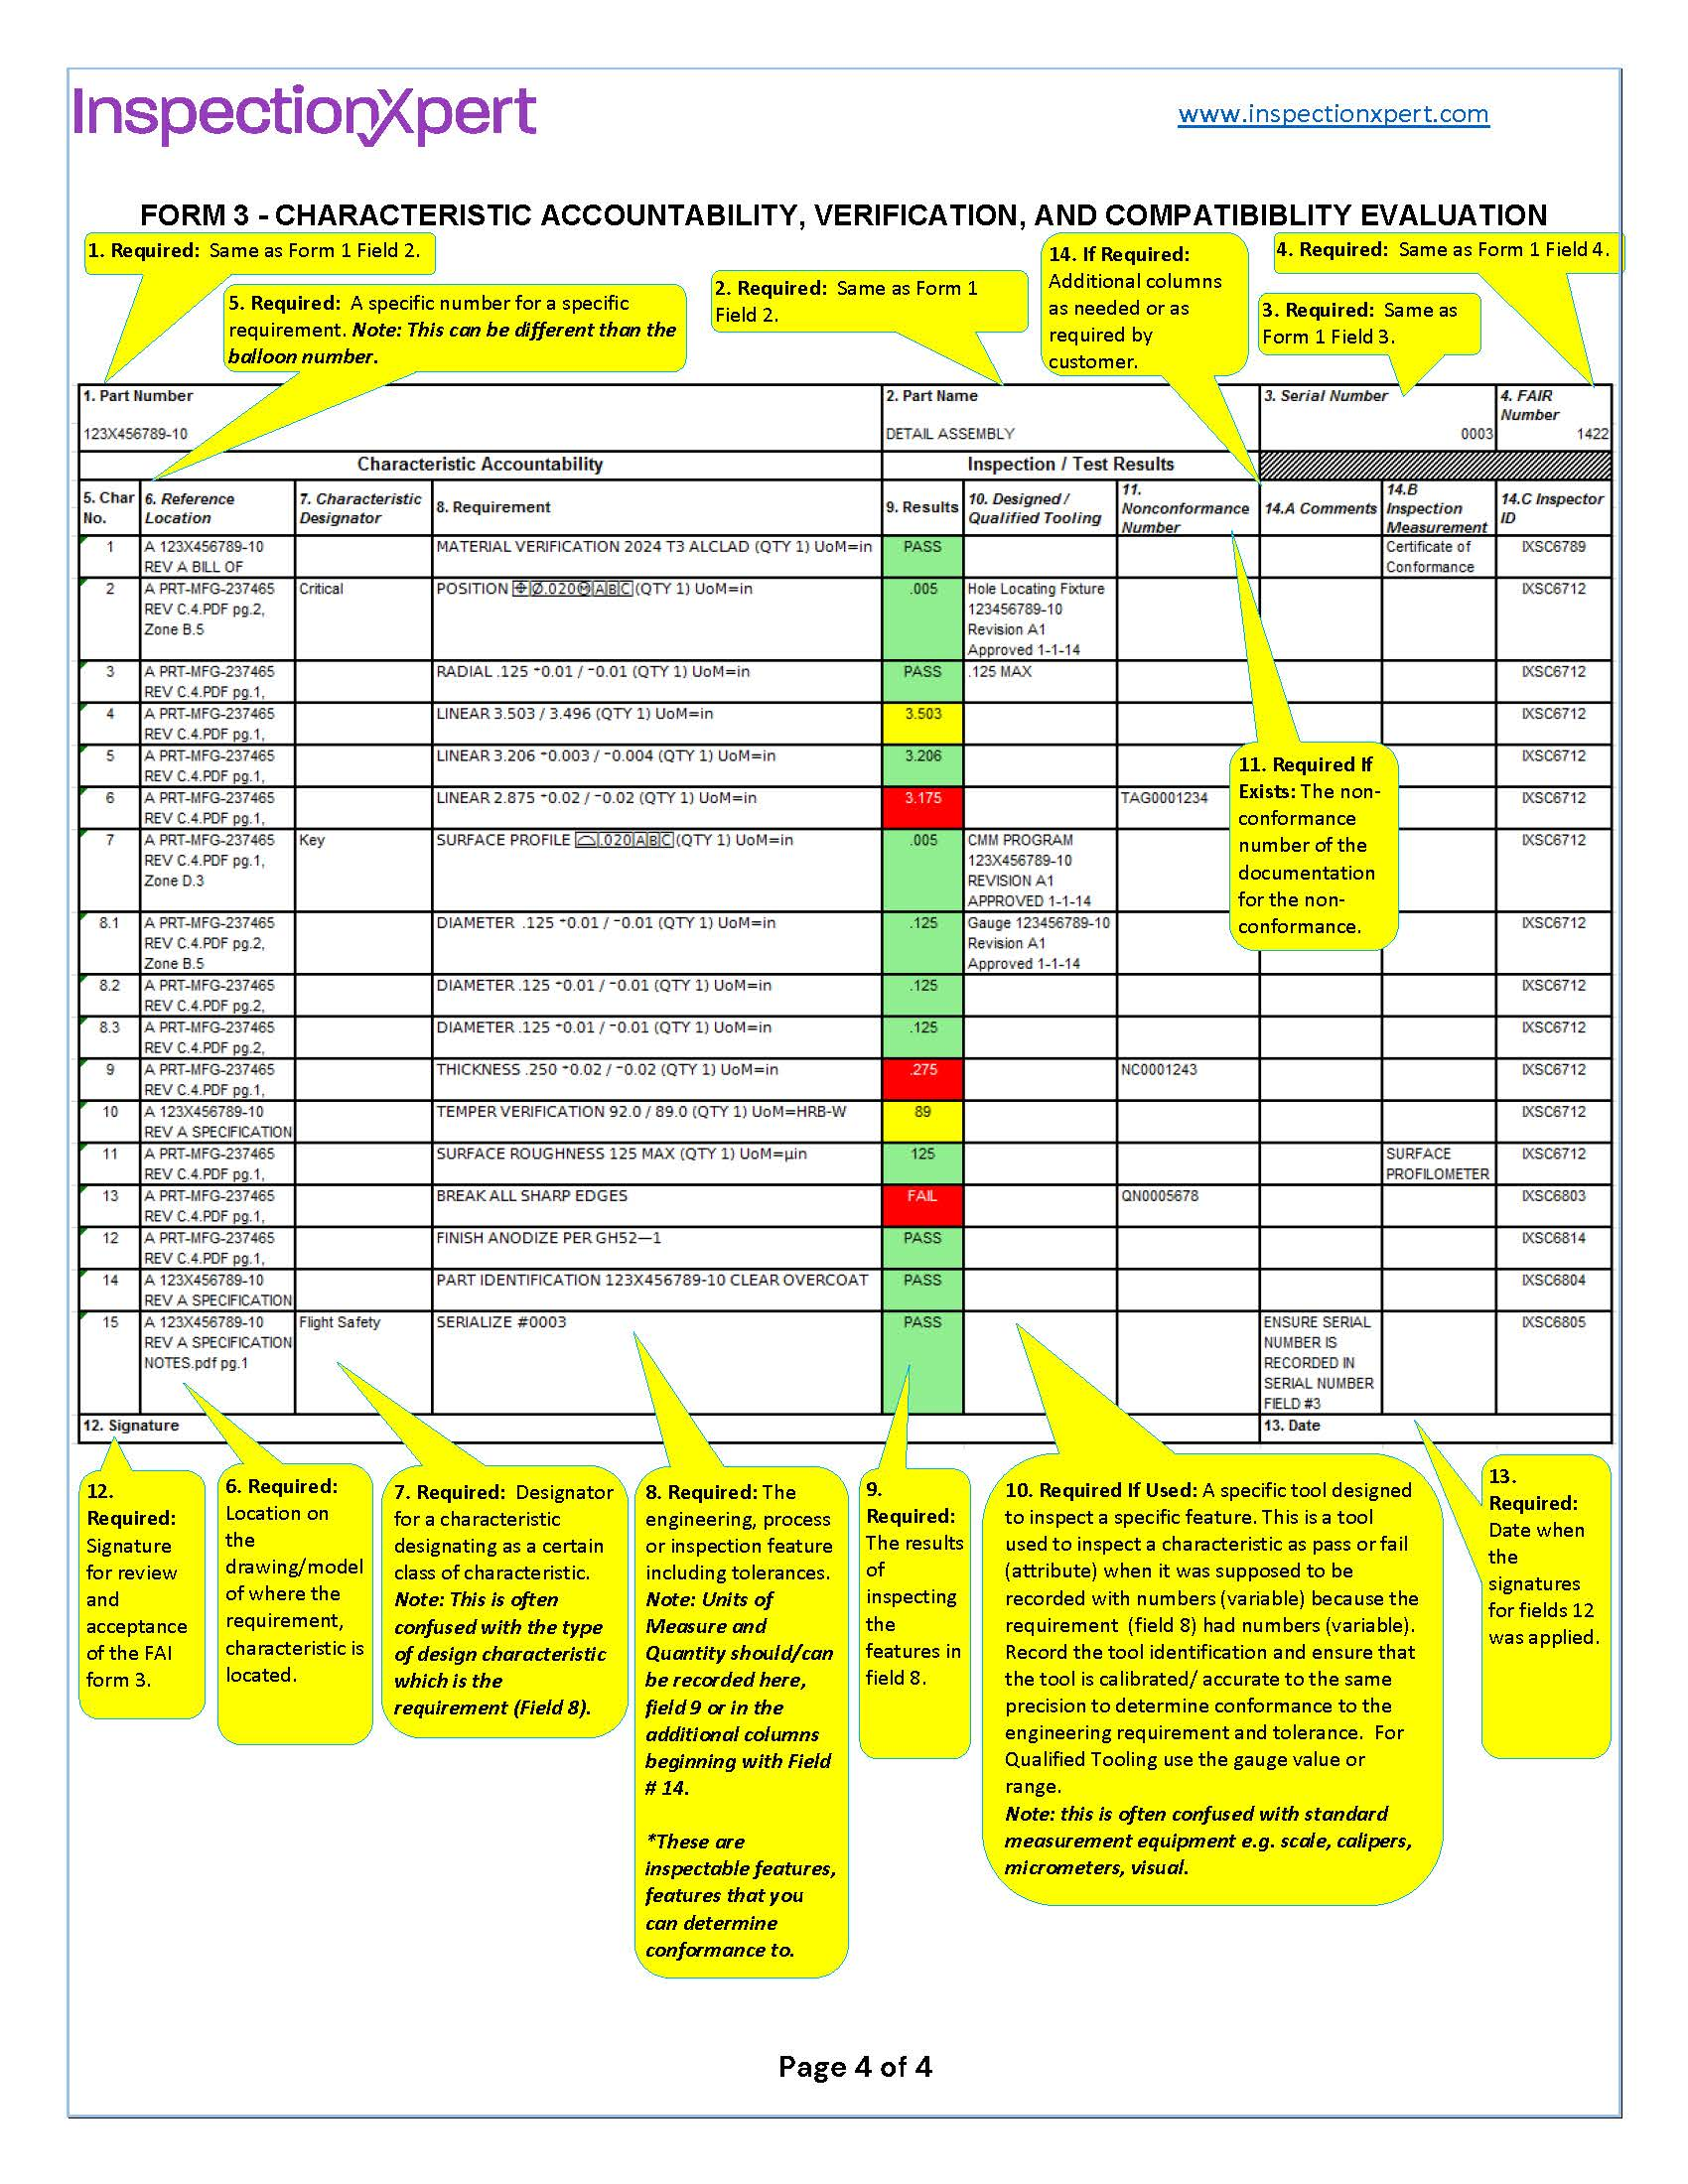 InspectionXpert AS9102 First Article Inspection Guide - Form 3 Characteristic Accountability